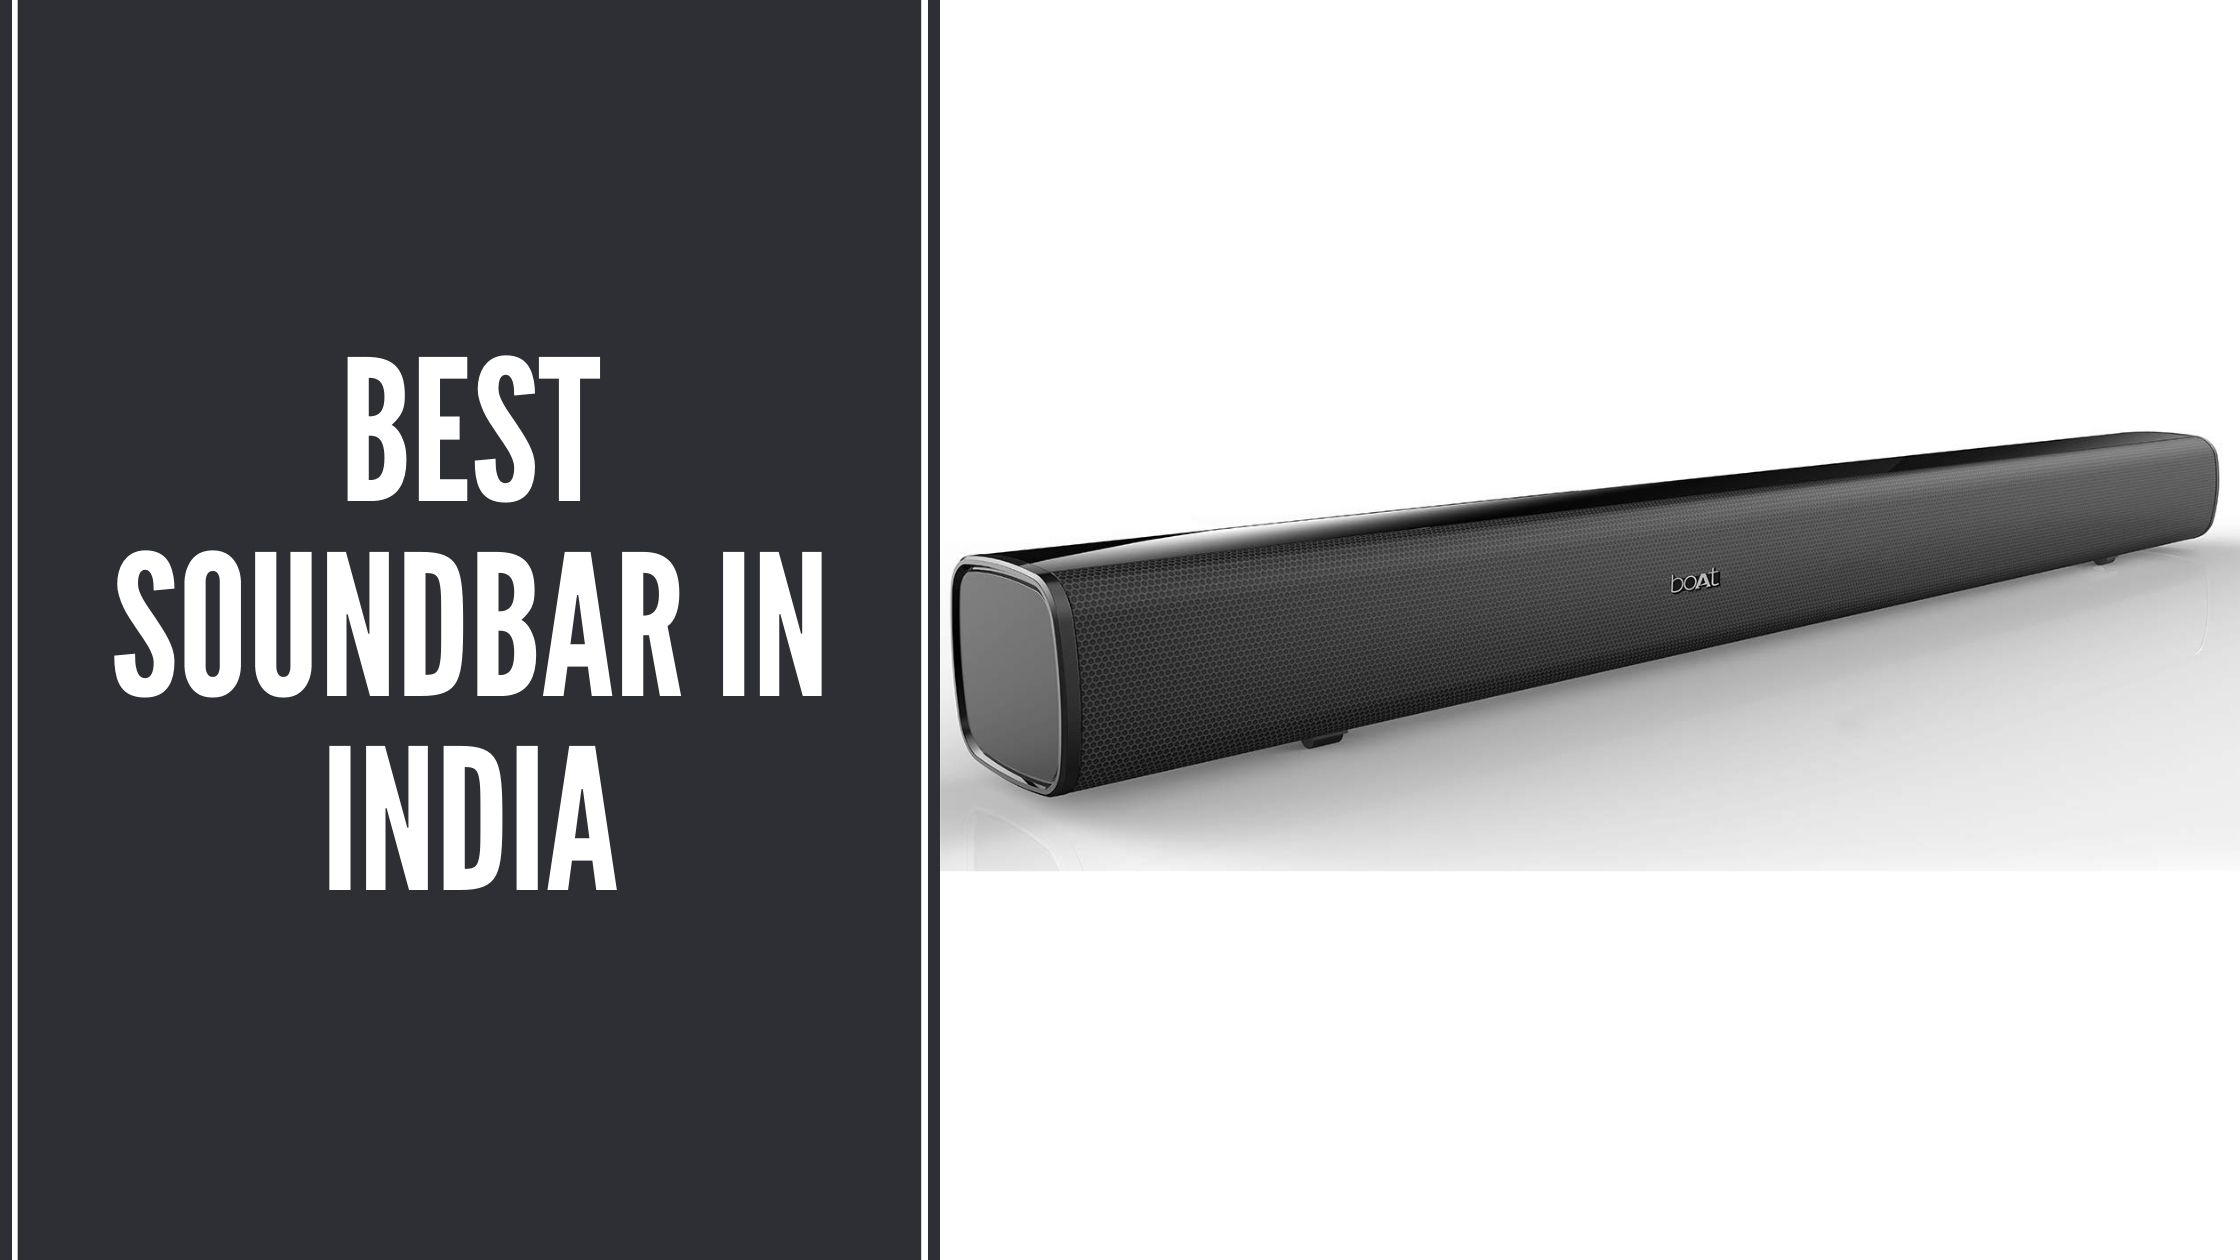 Best Soundbar in India